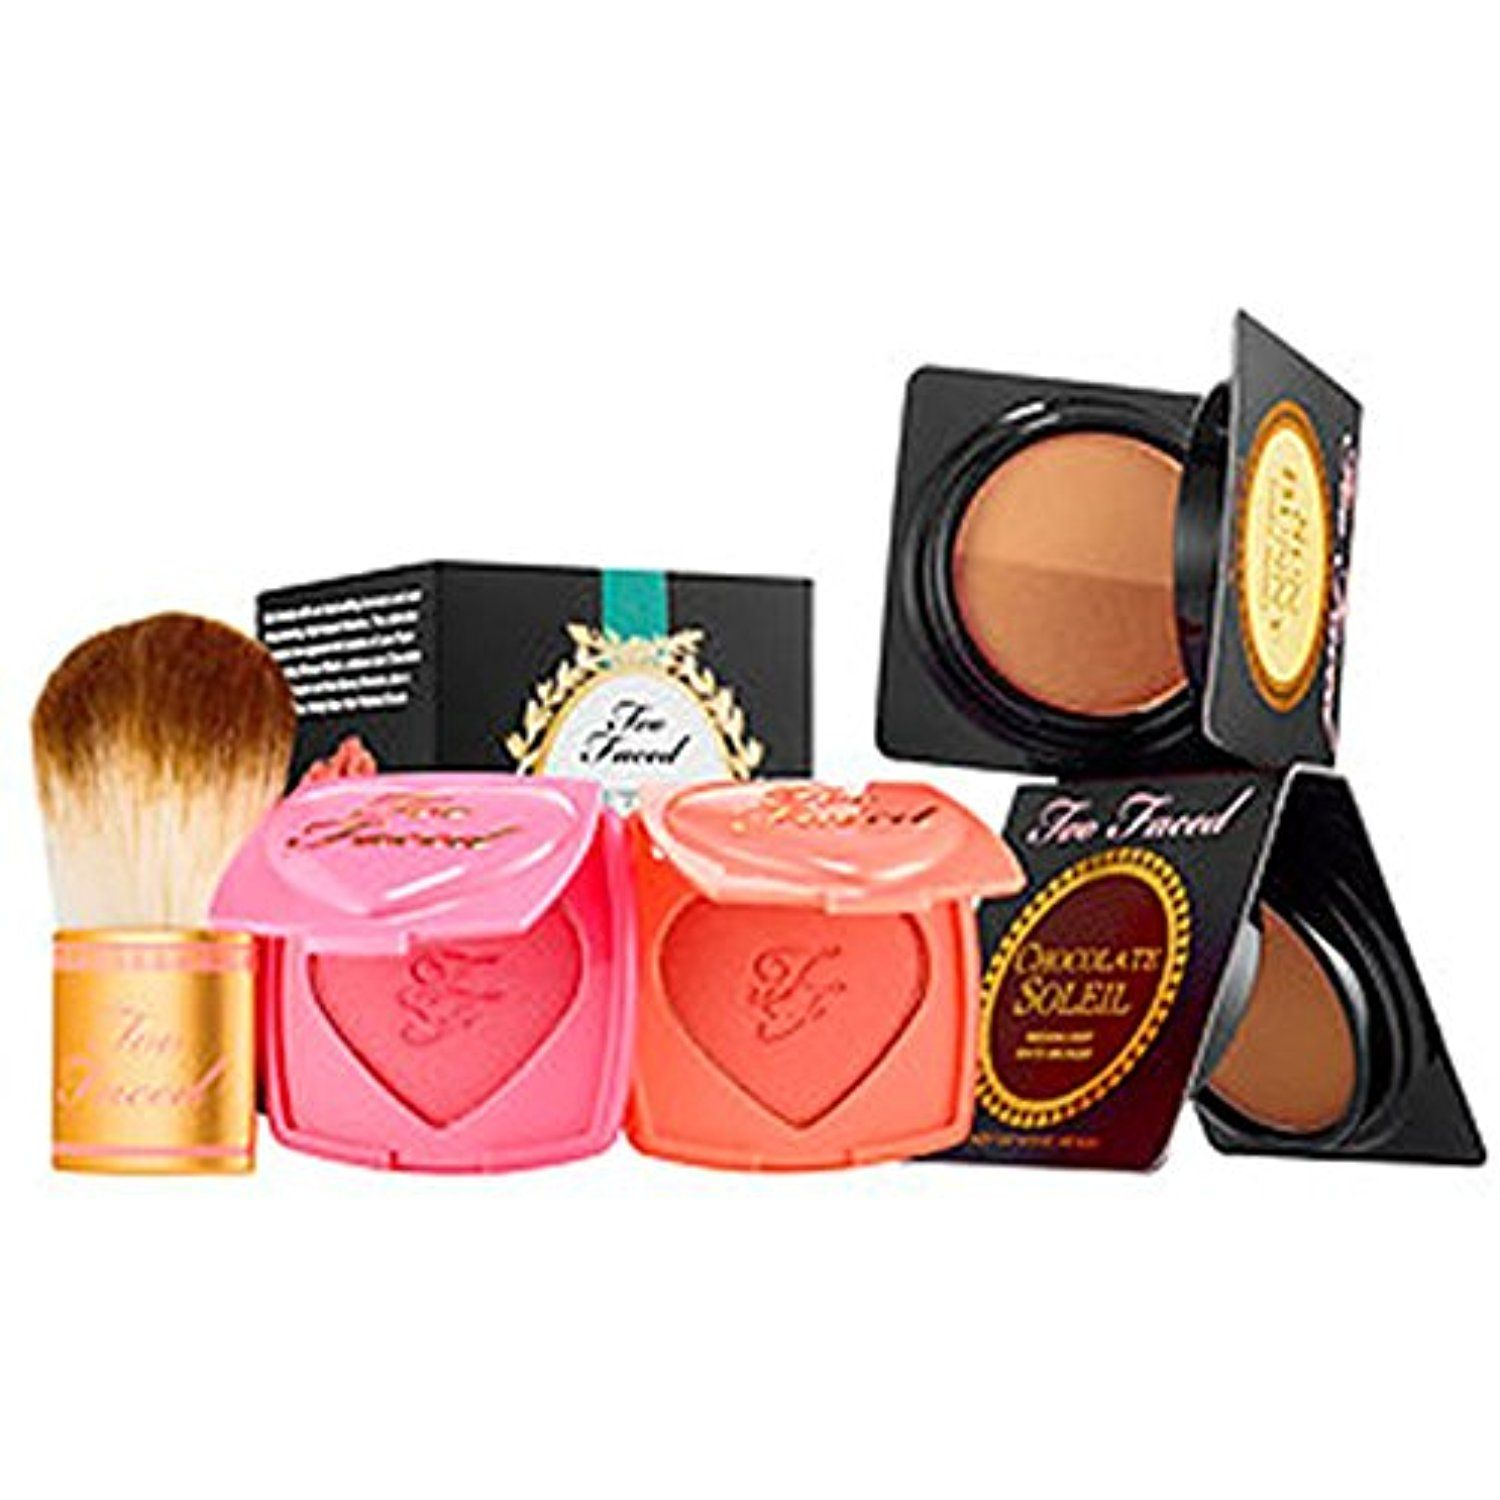 Too Faced Beautifully Blushed Cosmetic gift set